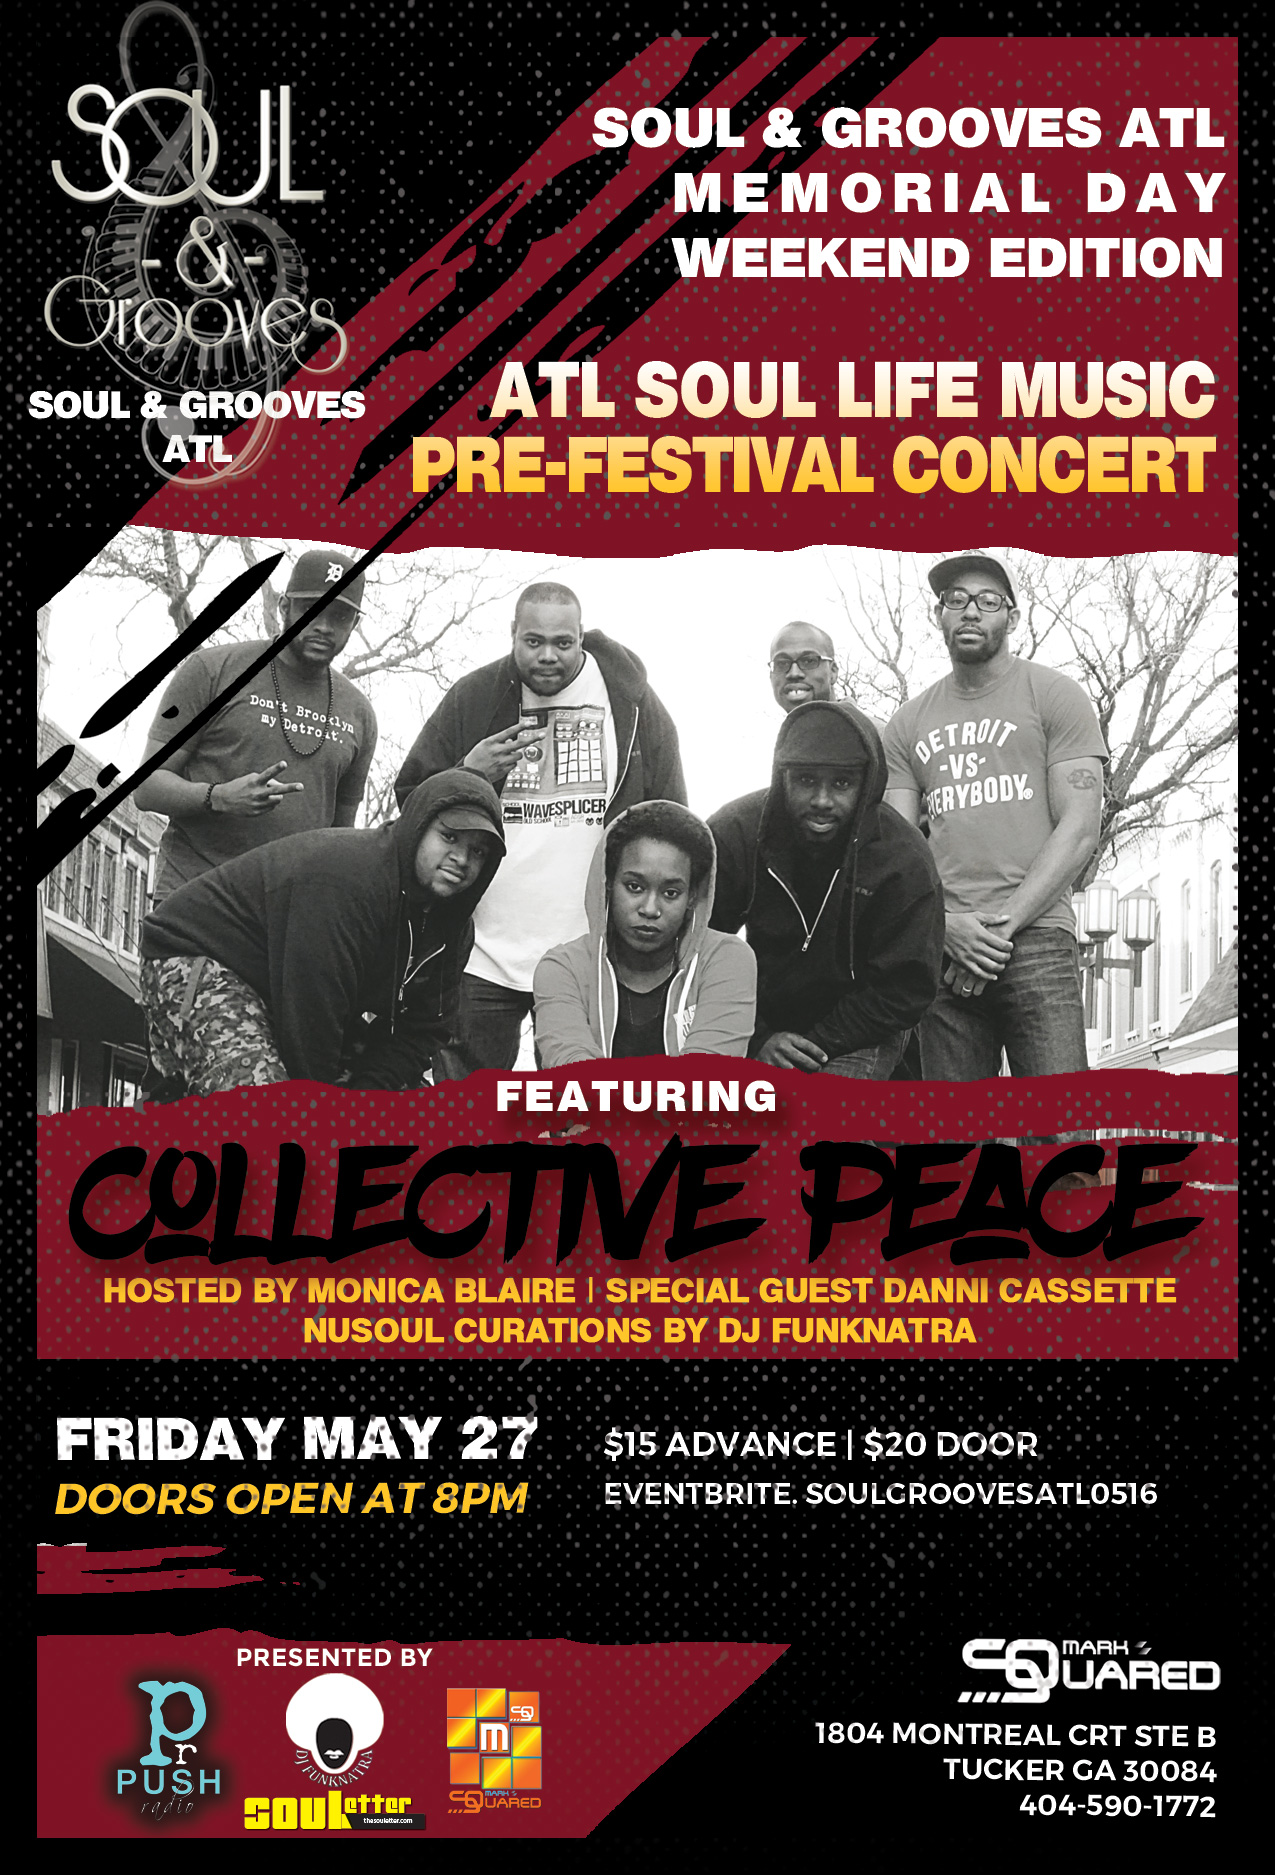 Soul and Grooves Atlanta Collective Peace